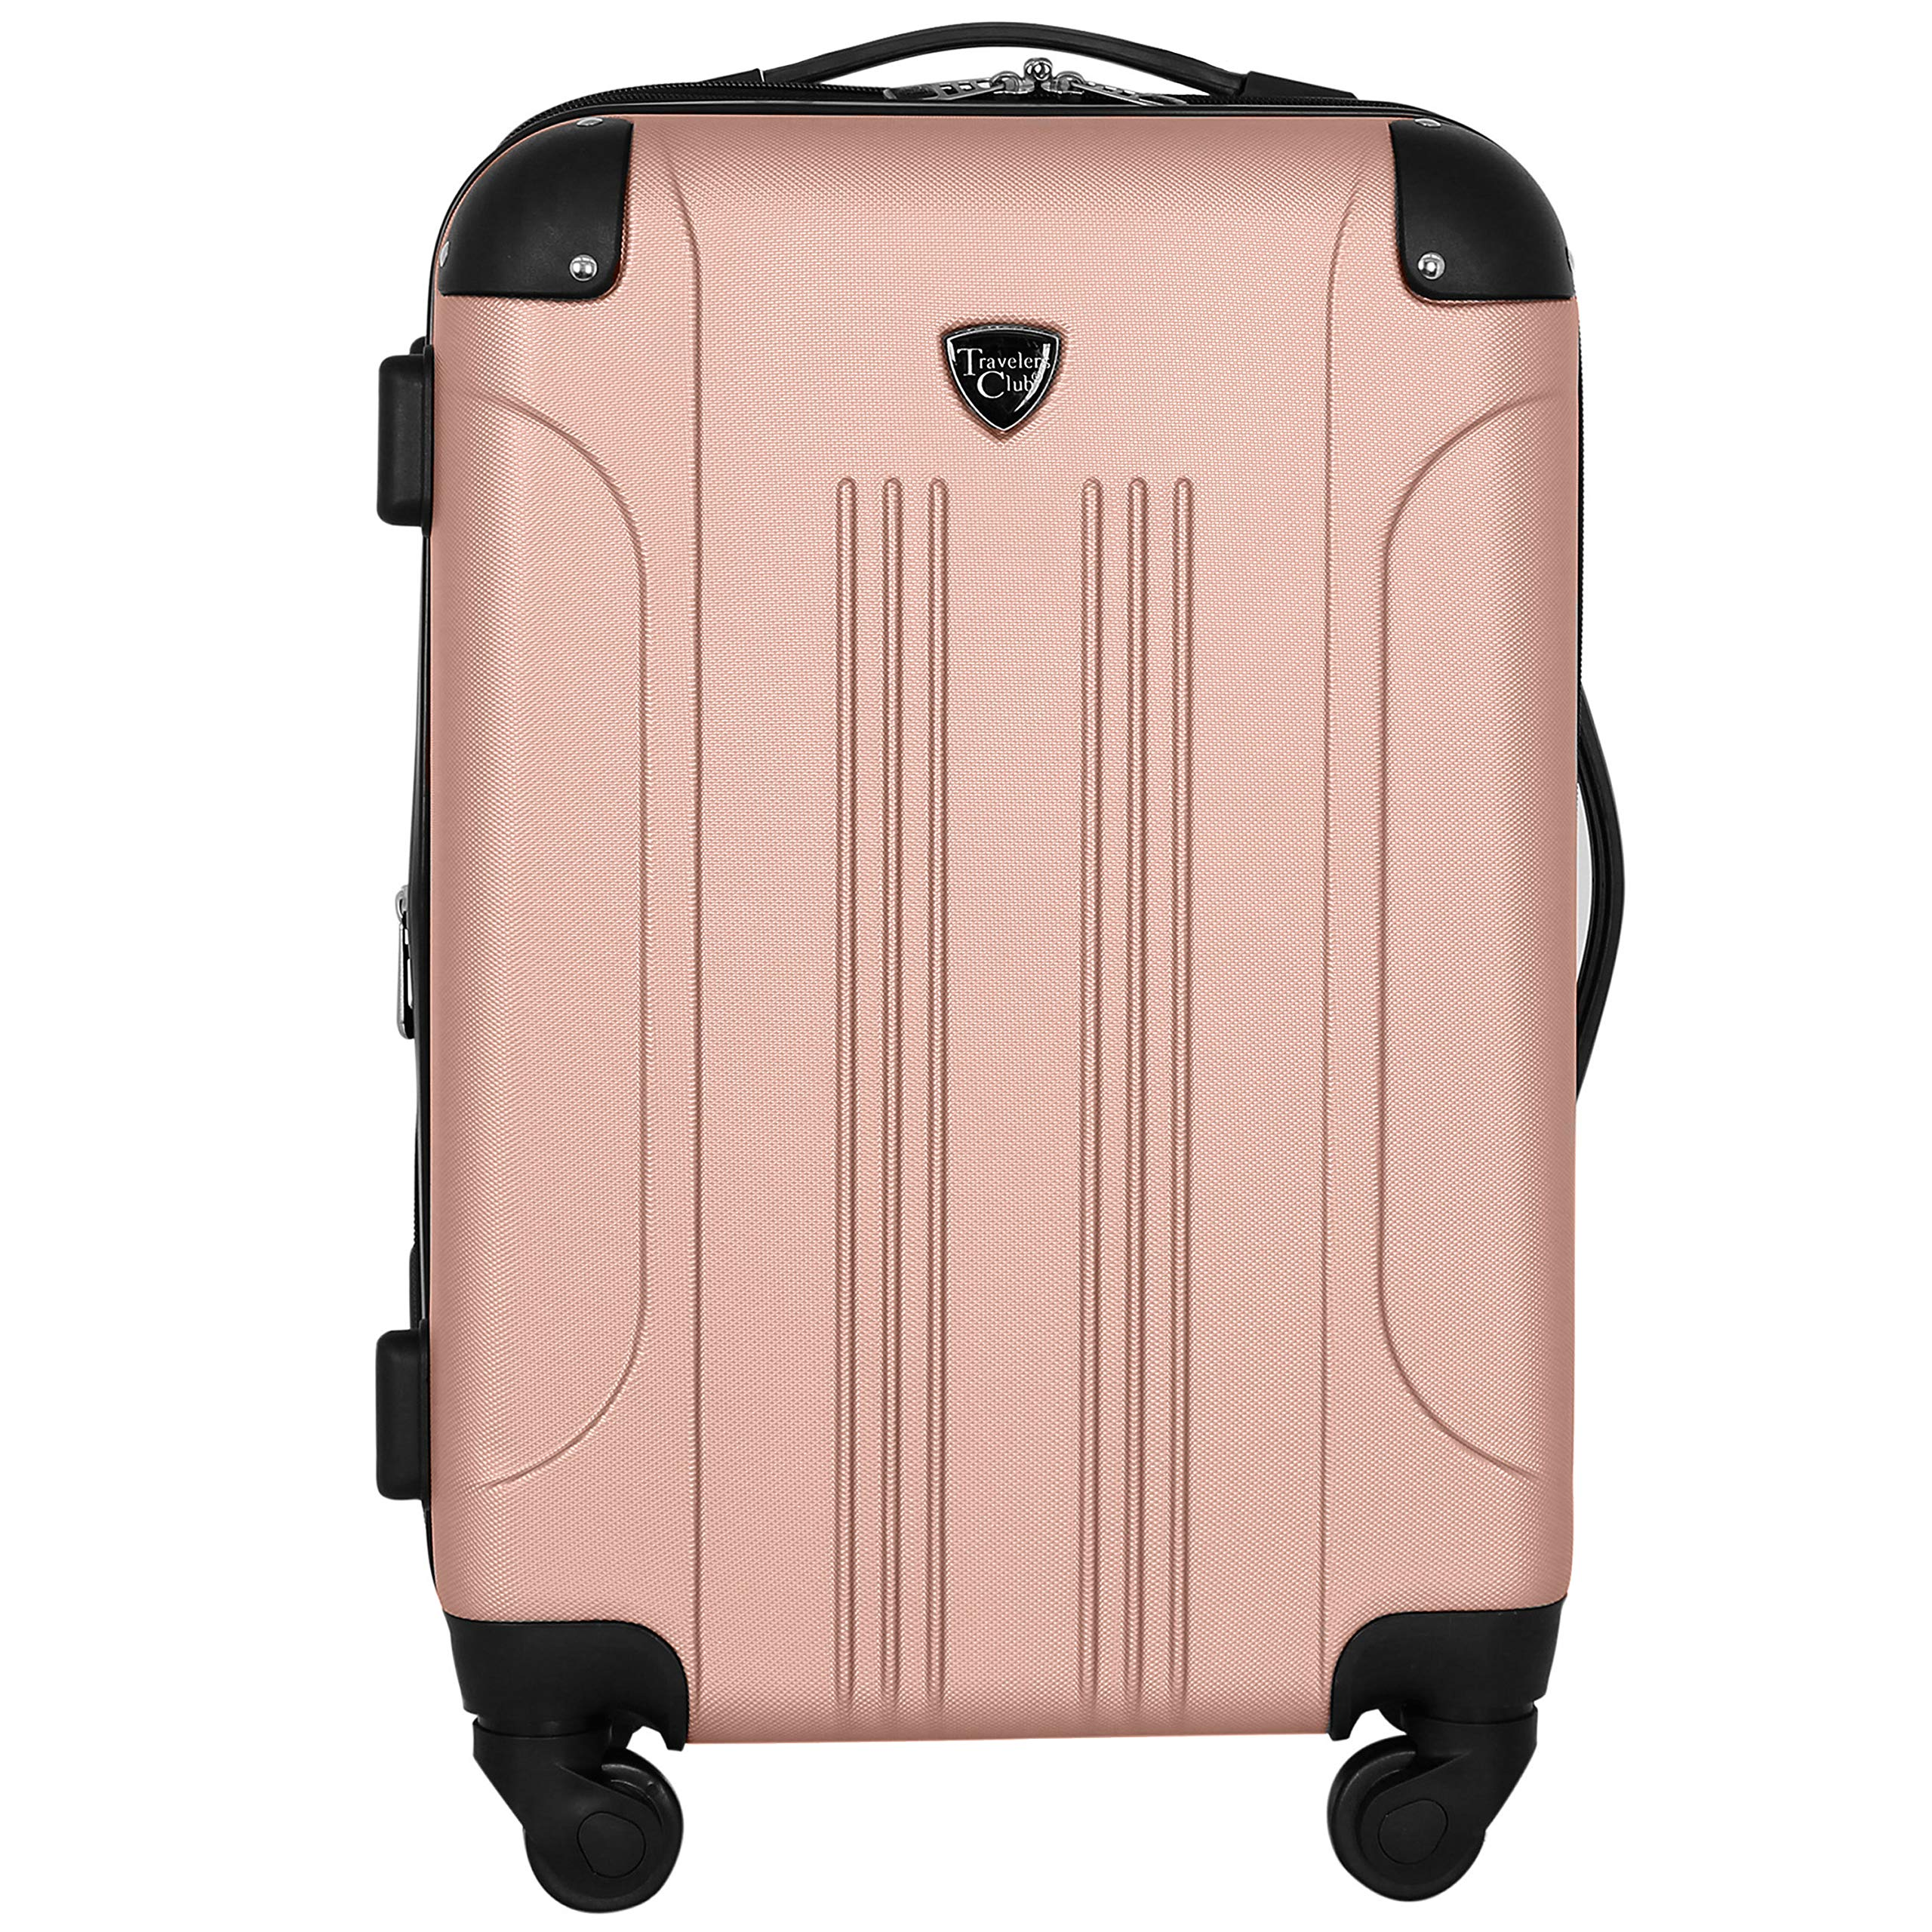 Travelers Club Expandable Hardside Mobility